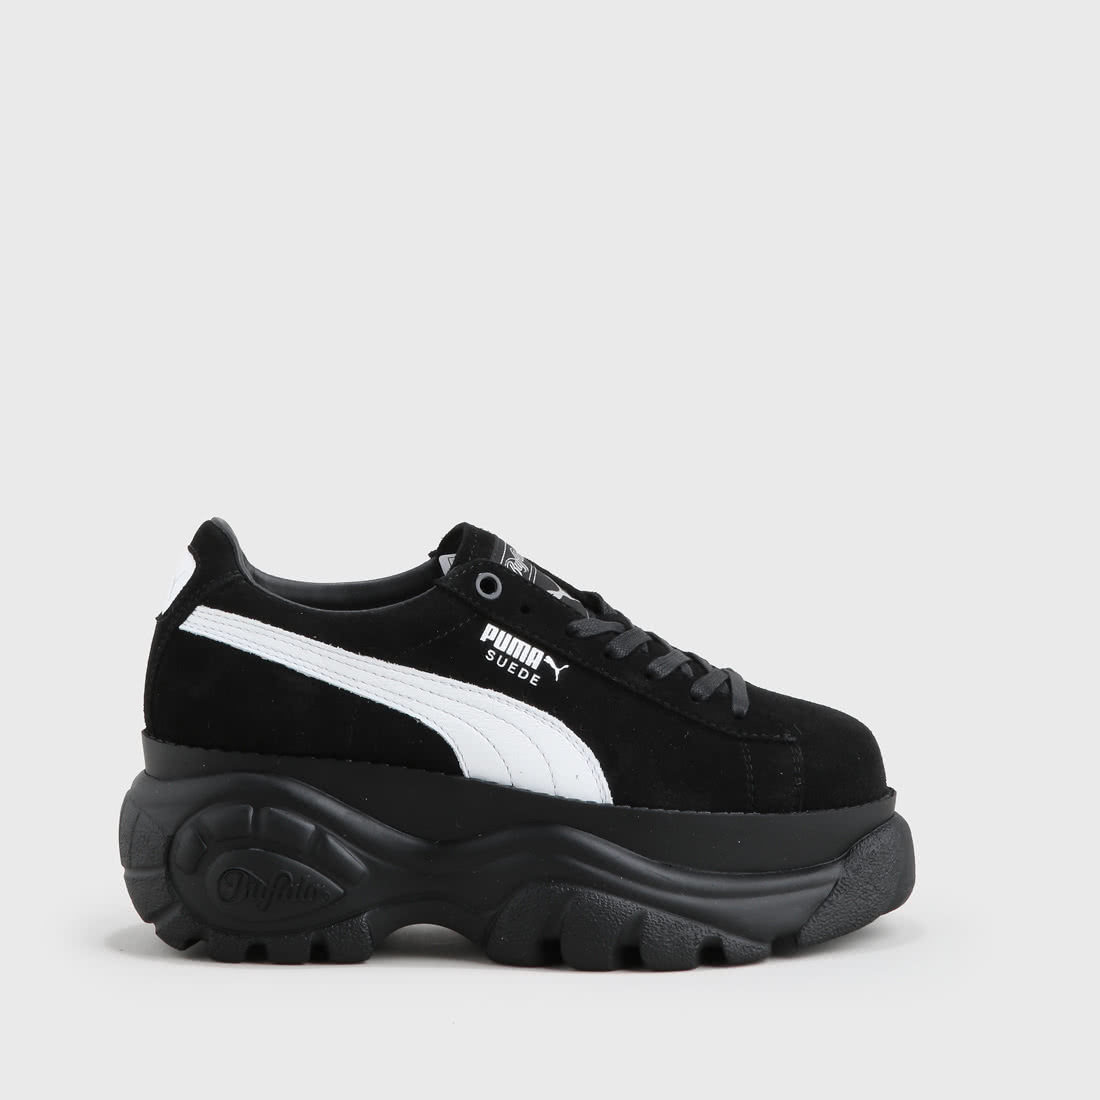 X London Online In Suede Buy Black Platform Buffalo Puma 76vbyfgY